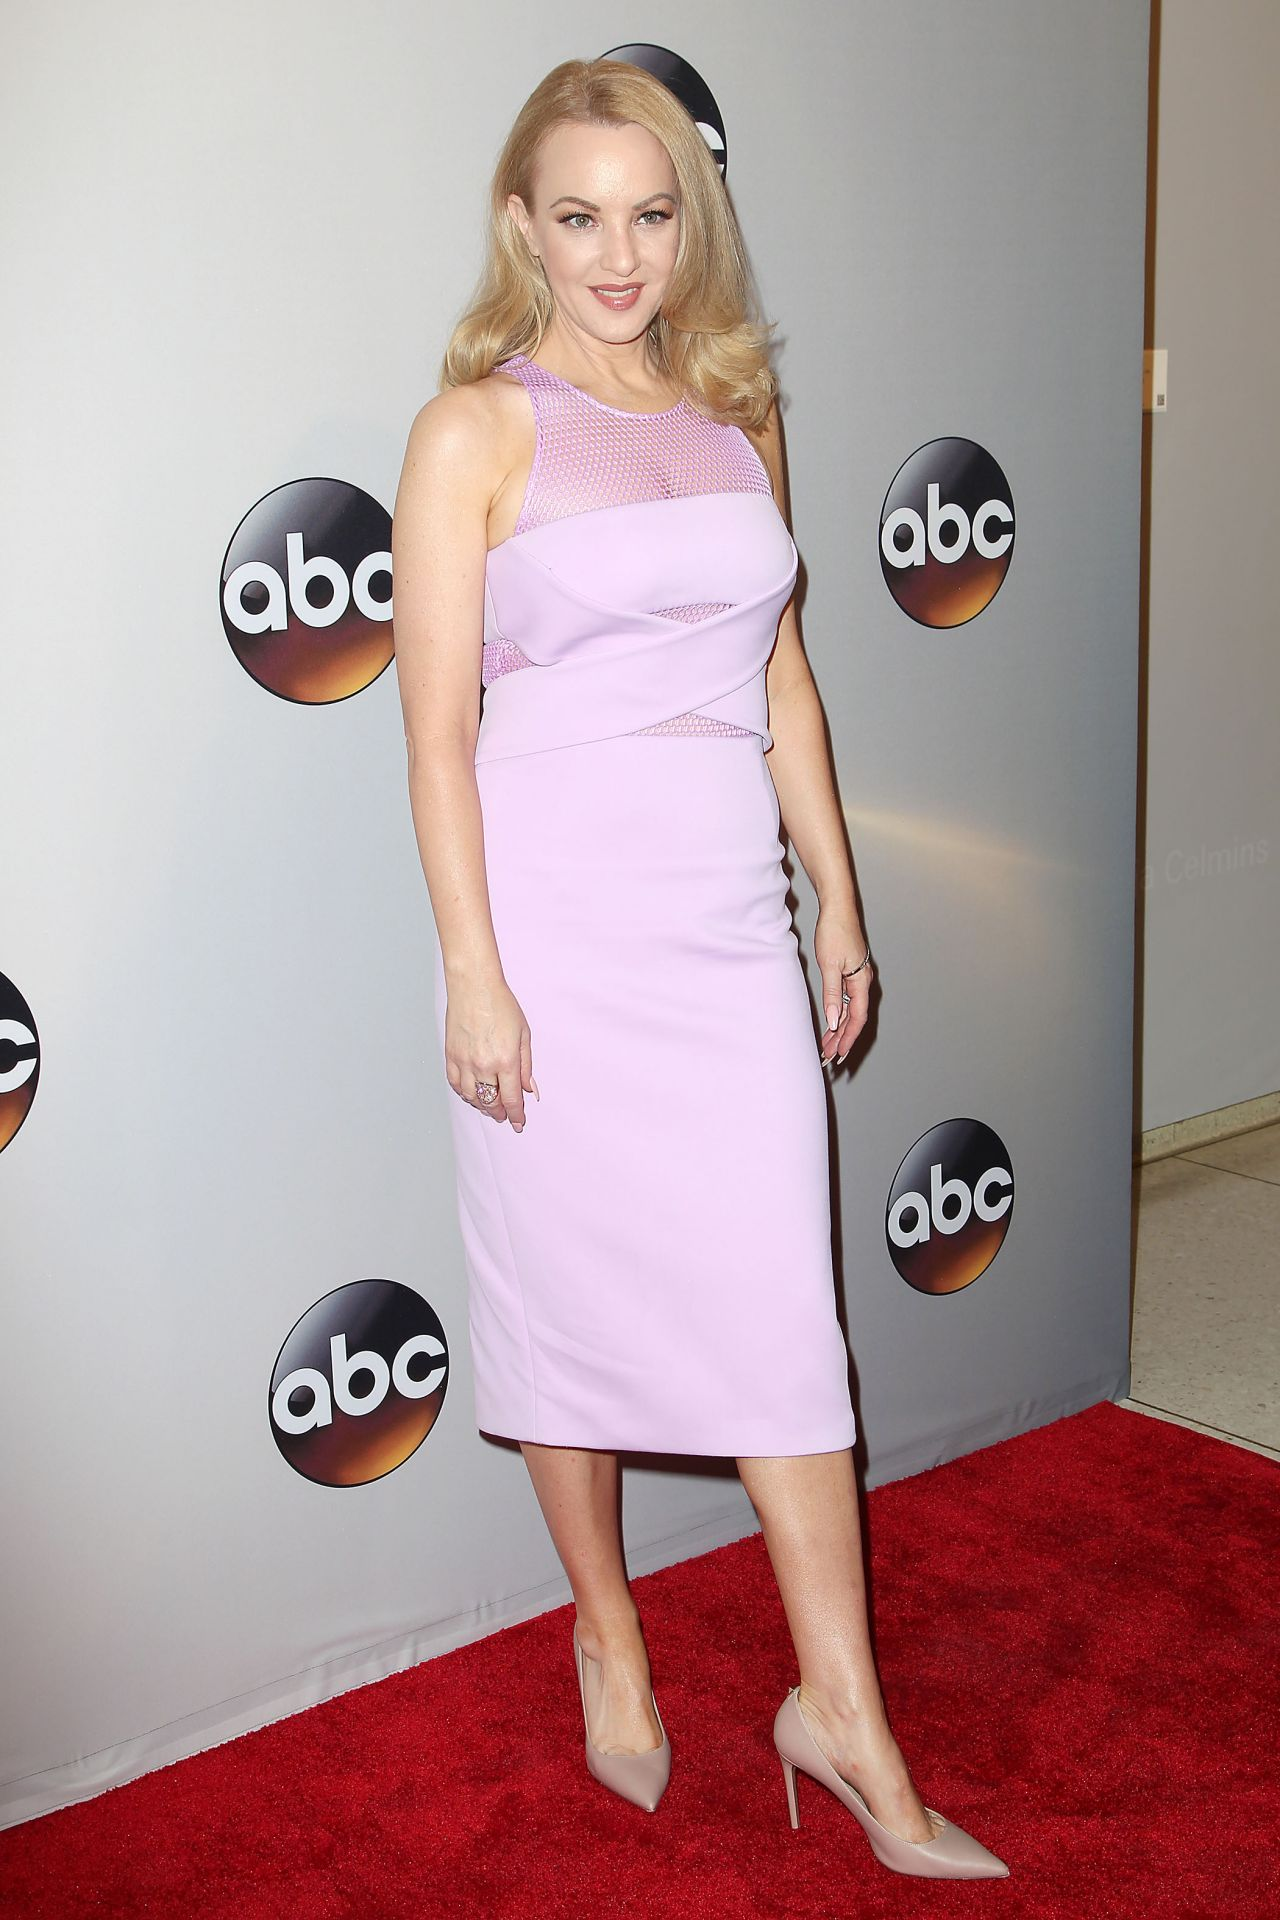 Wendi McLendon-Covey - ABC Network 2016 Upfront Presentation in New York City